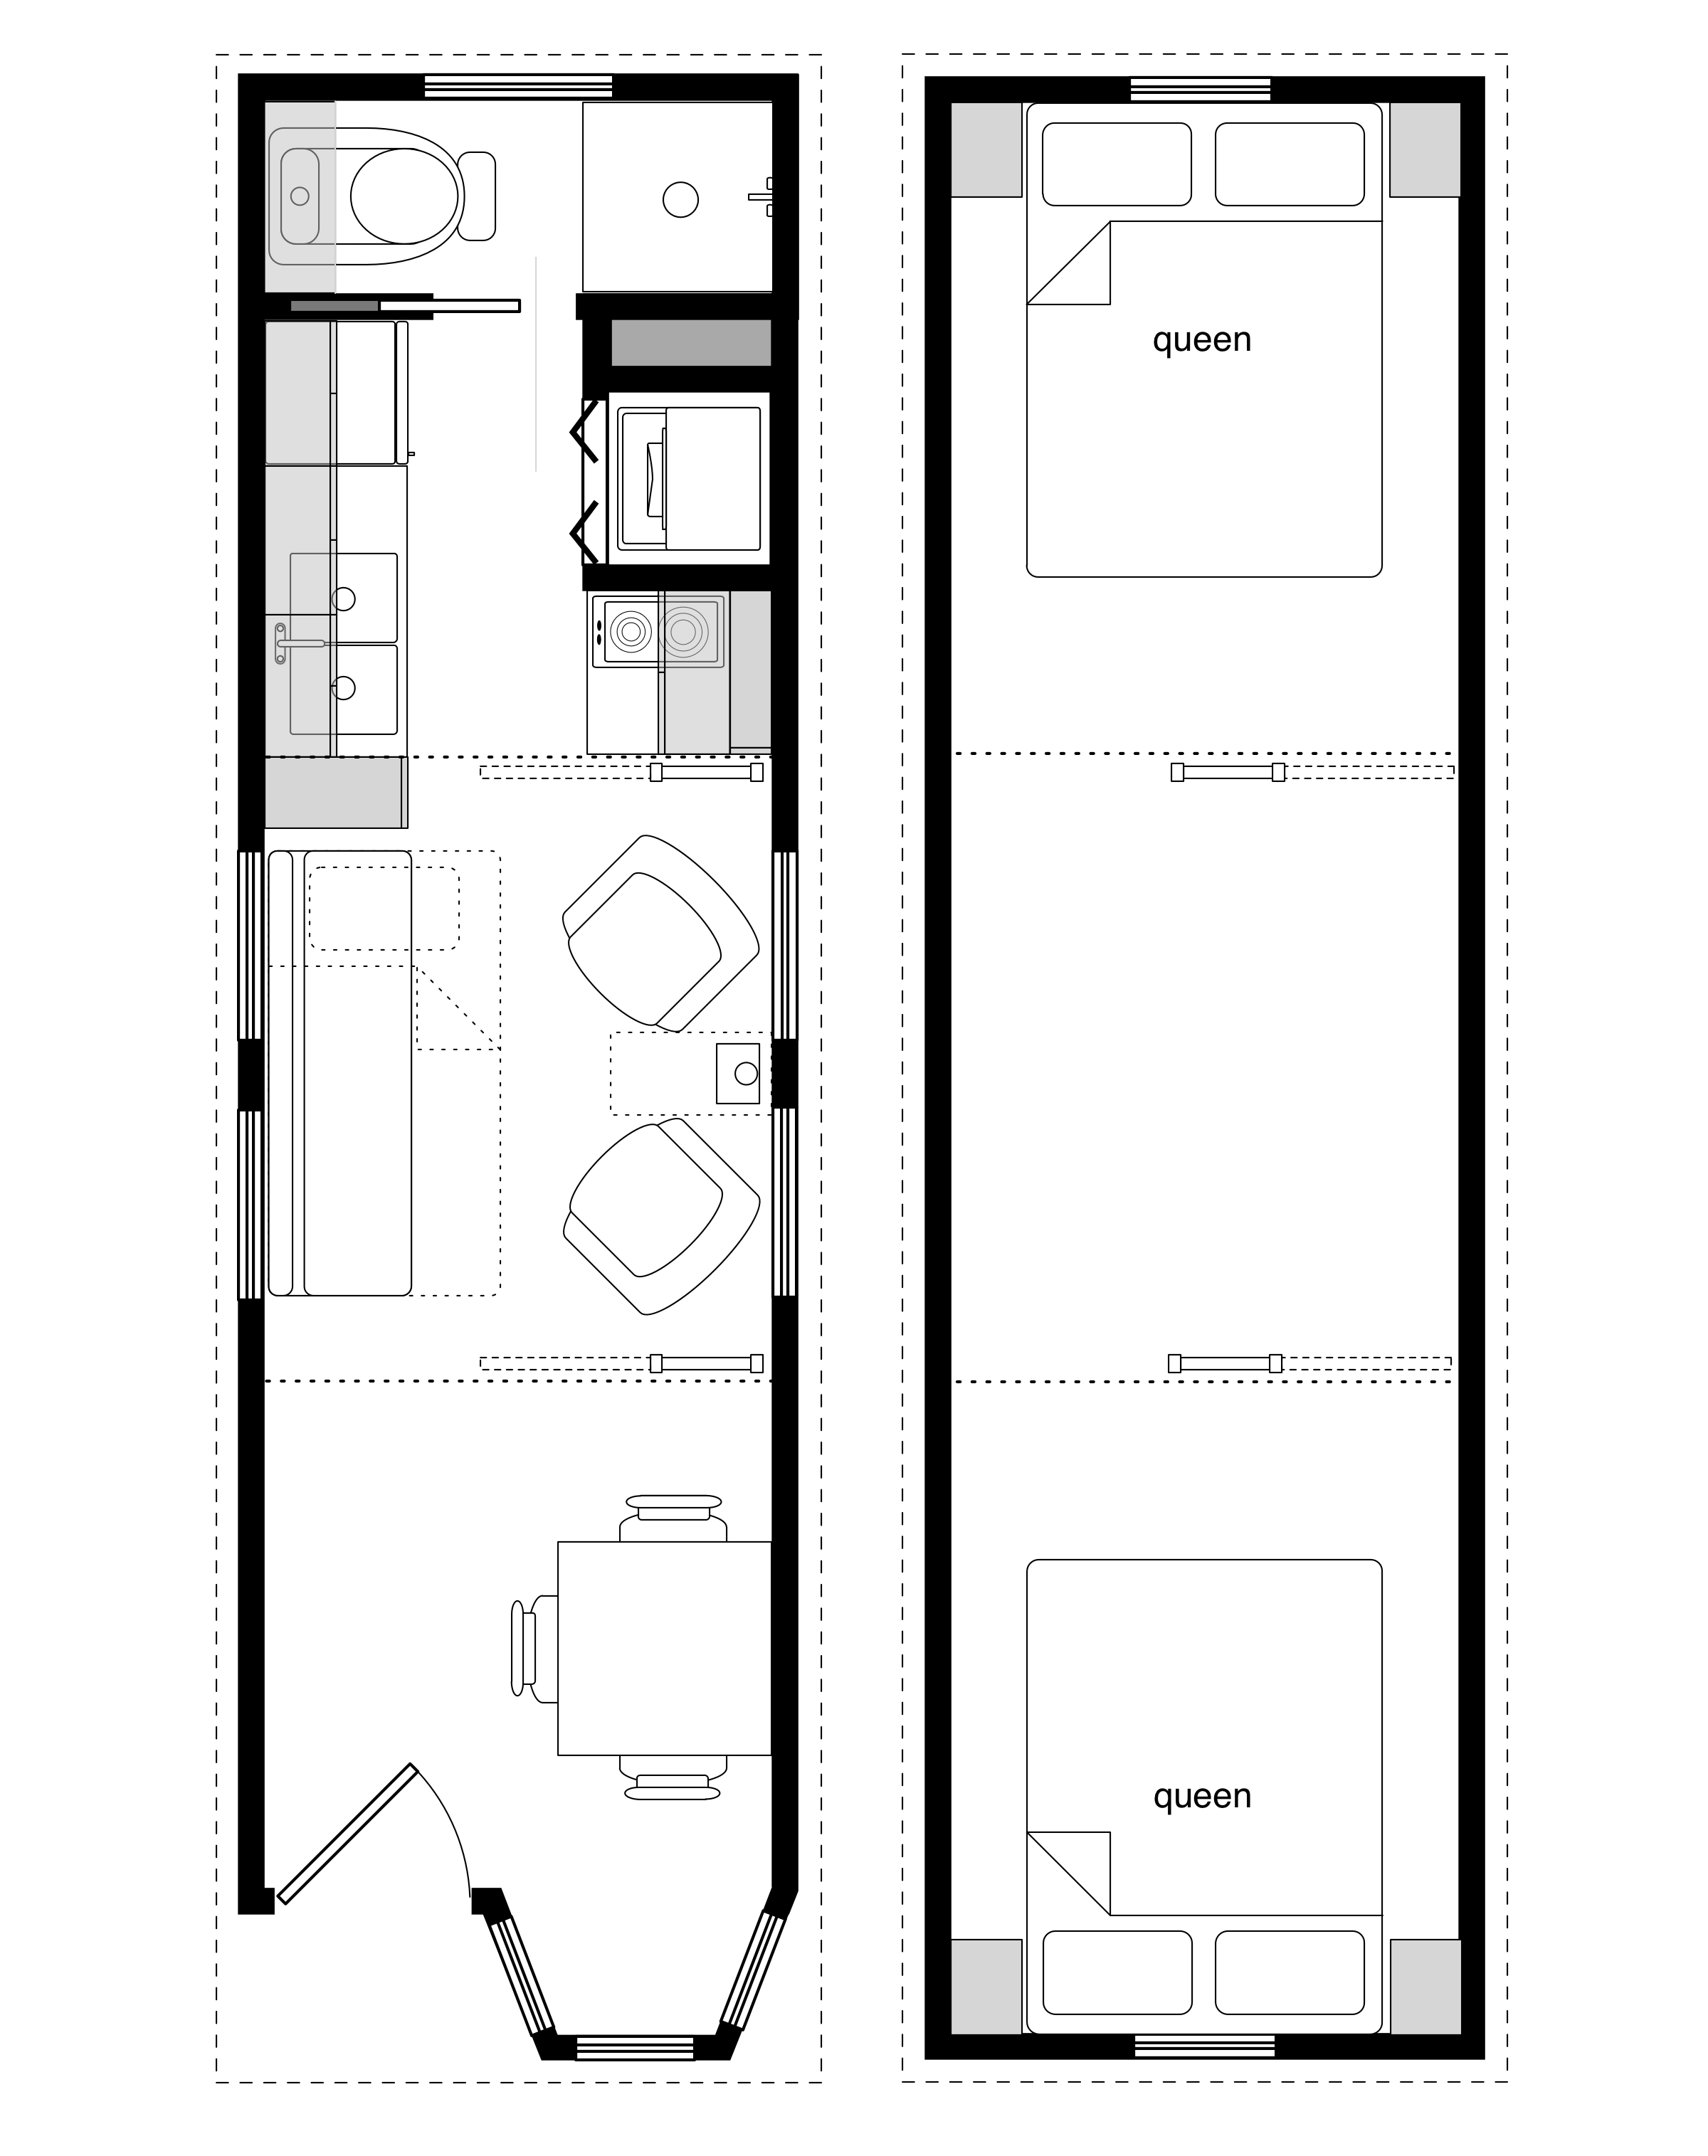 sample floor plans for the 828 coastal cottage tiny house design - Tiny House Framing 2